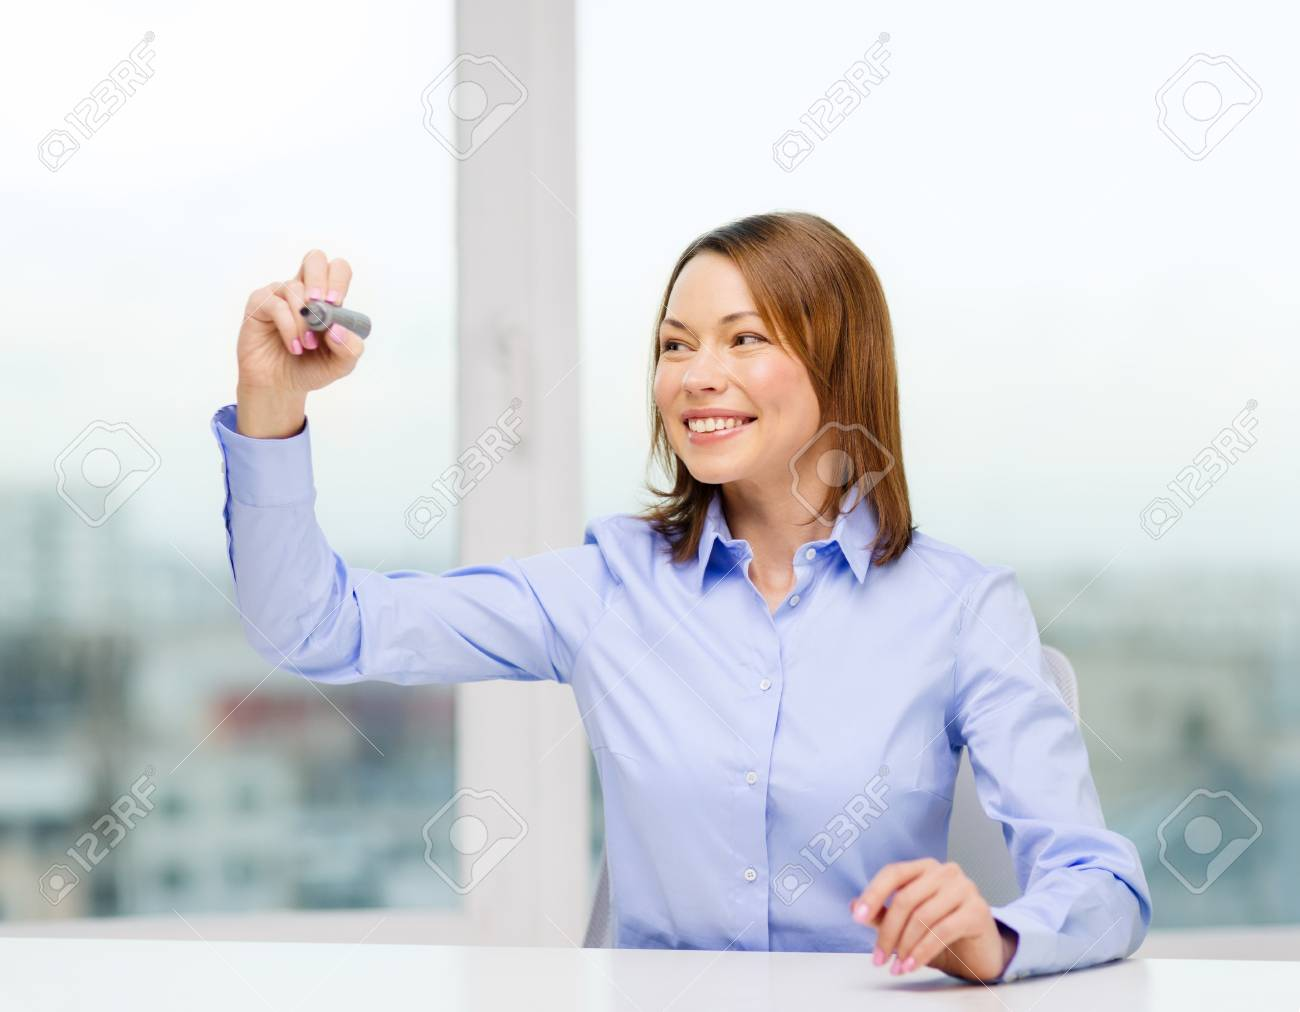 office, business, technology concept - businesswoman writing something in the air with marker Stock Photo - 25850896